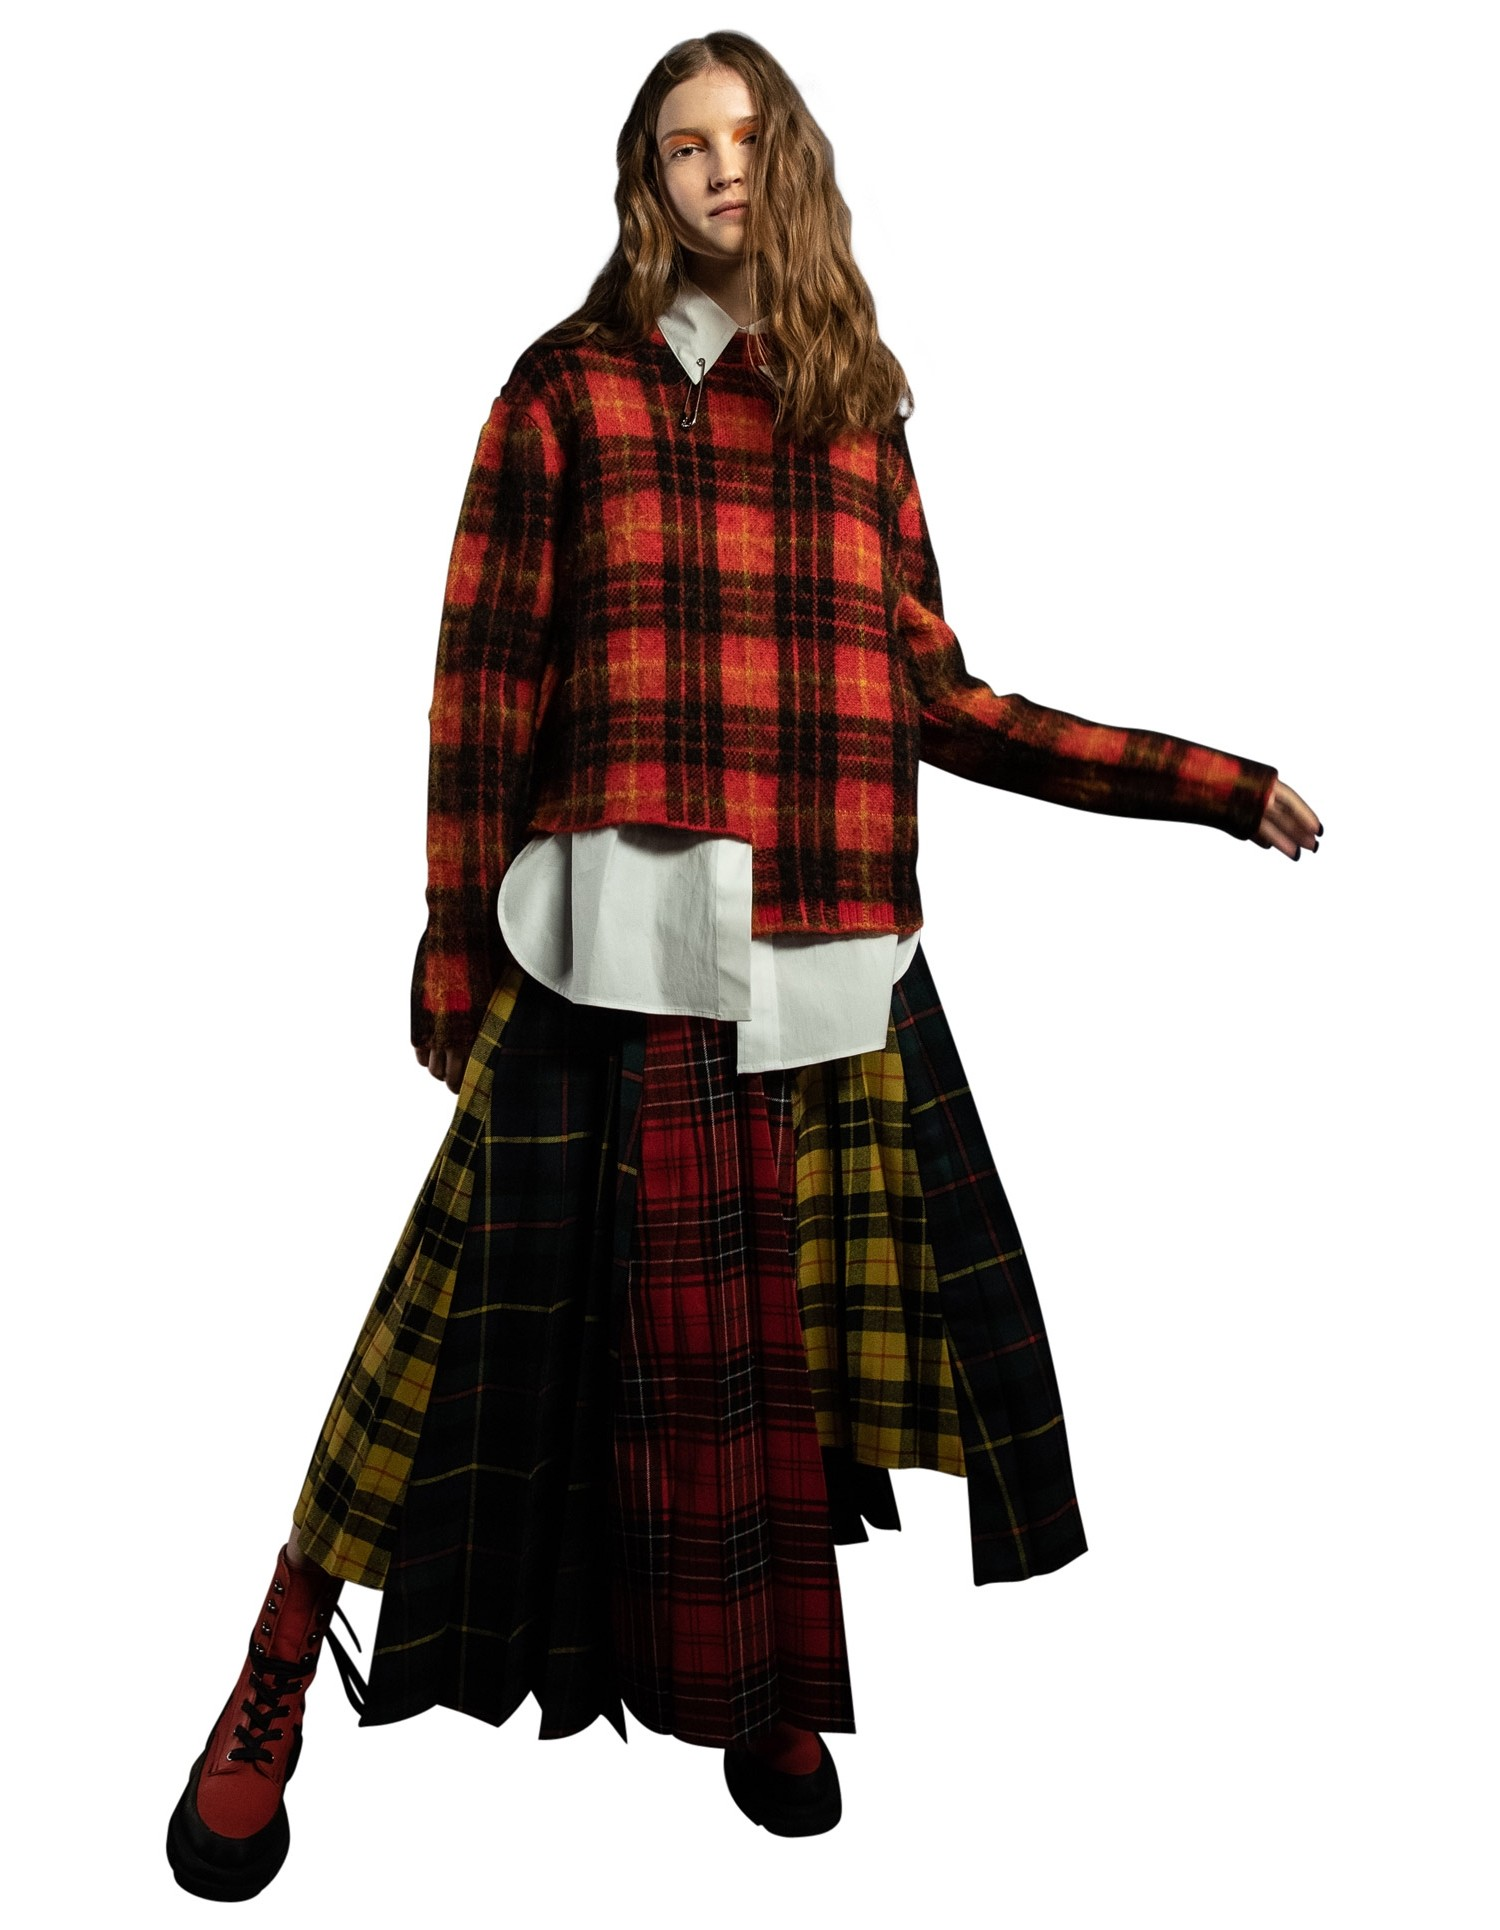 MONSE Tartan Pleated Step Skirt in Plaid Multi on Model Front View